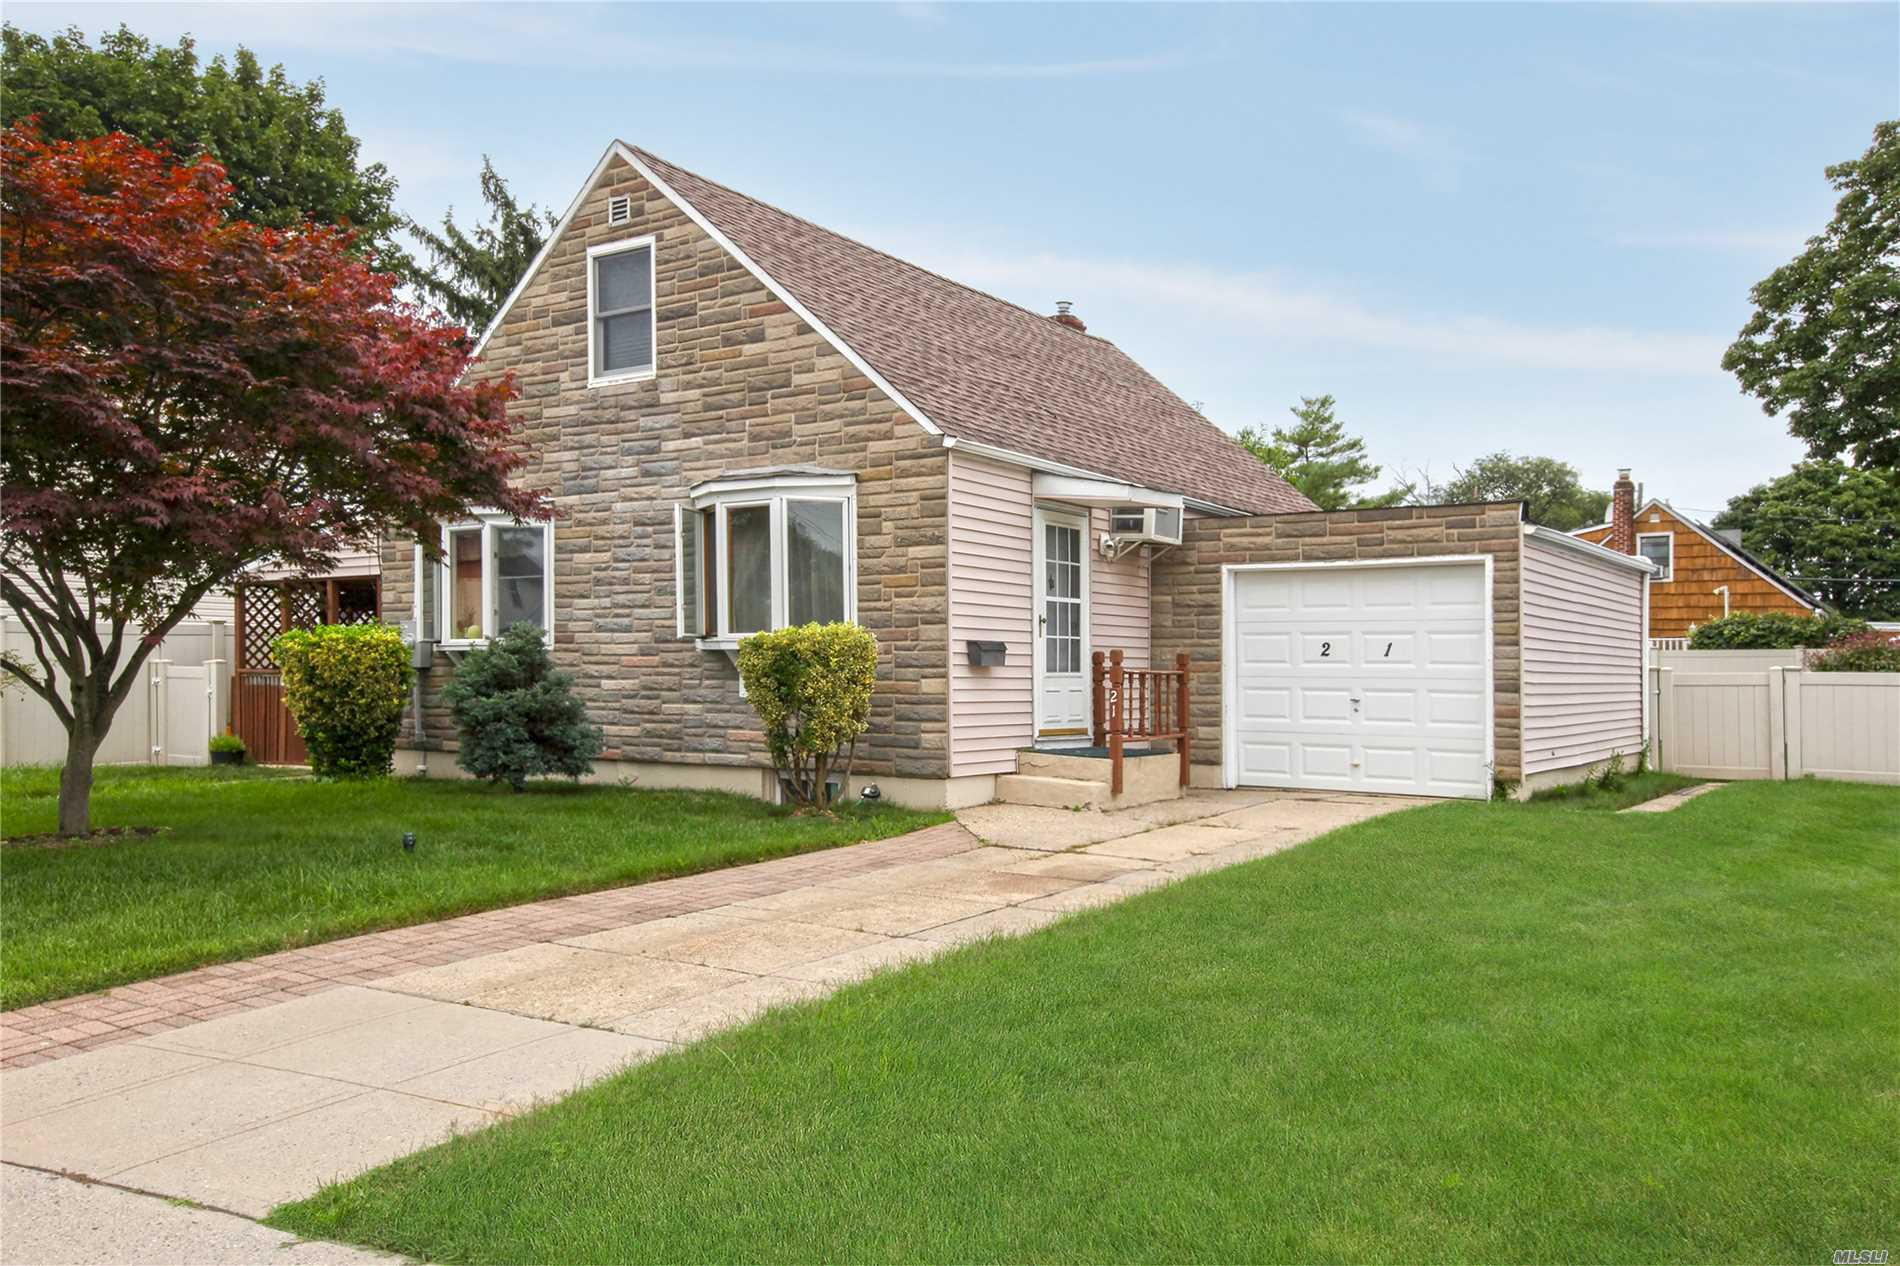 21 Byron Pl - Hicksville, New York